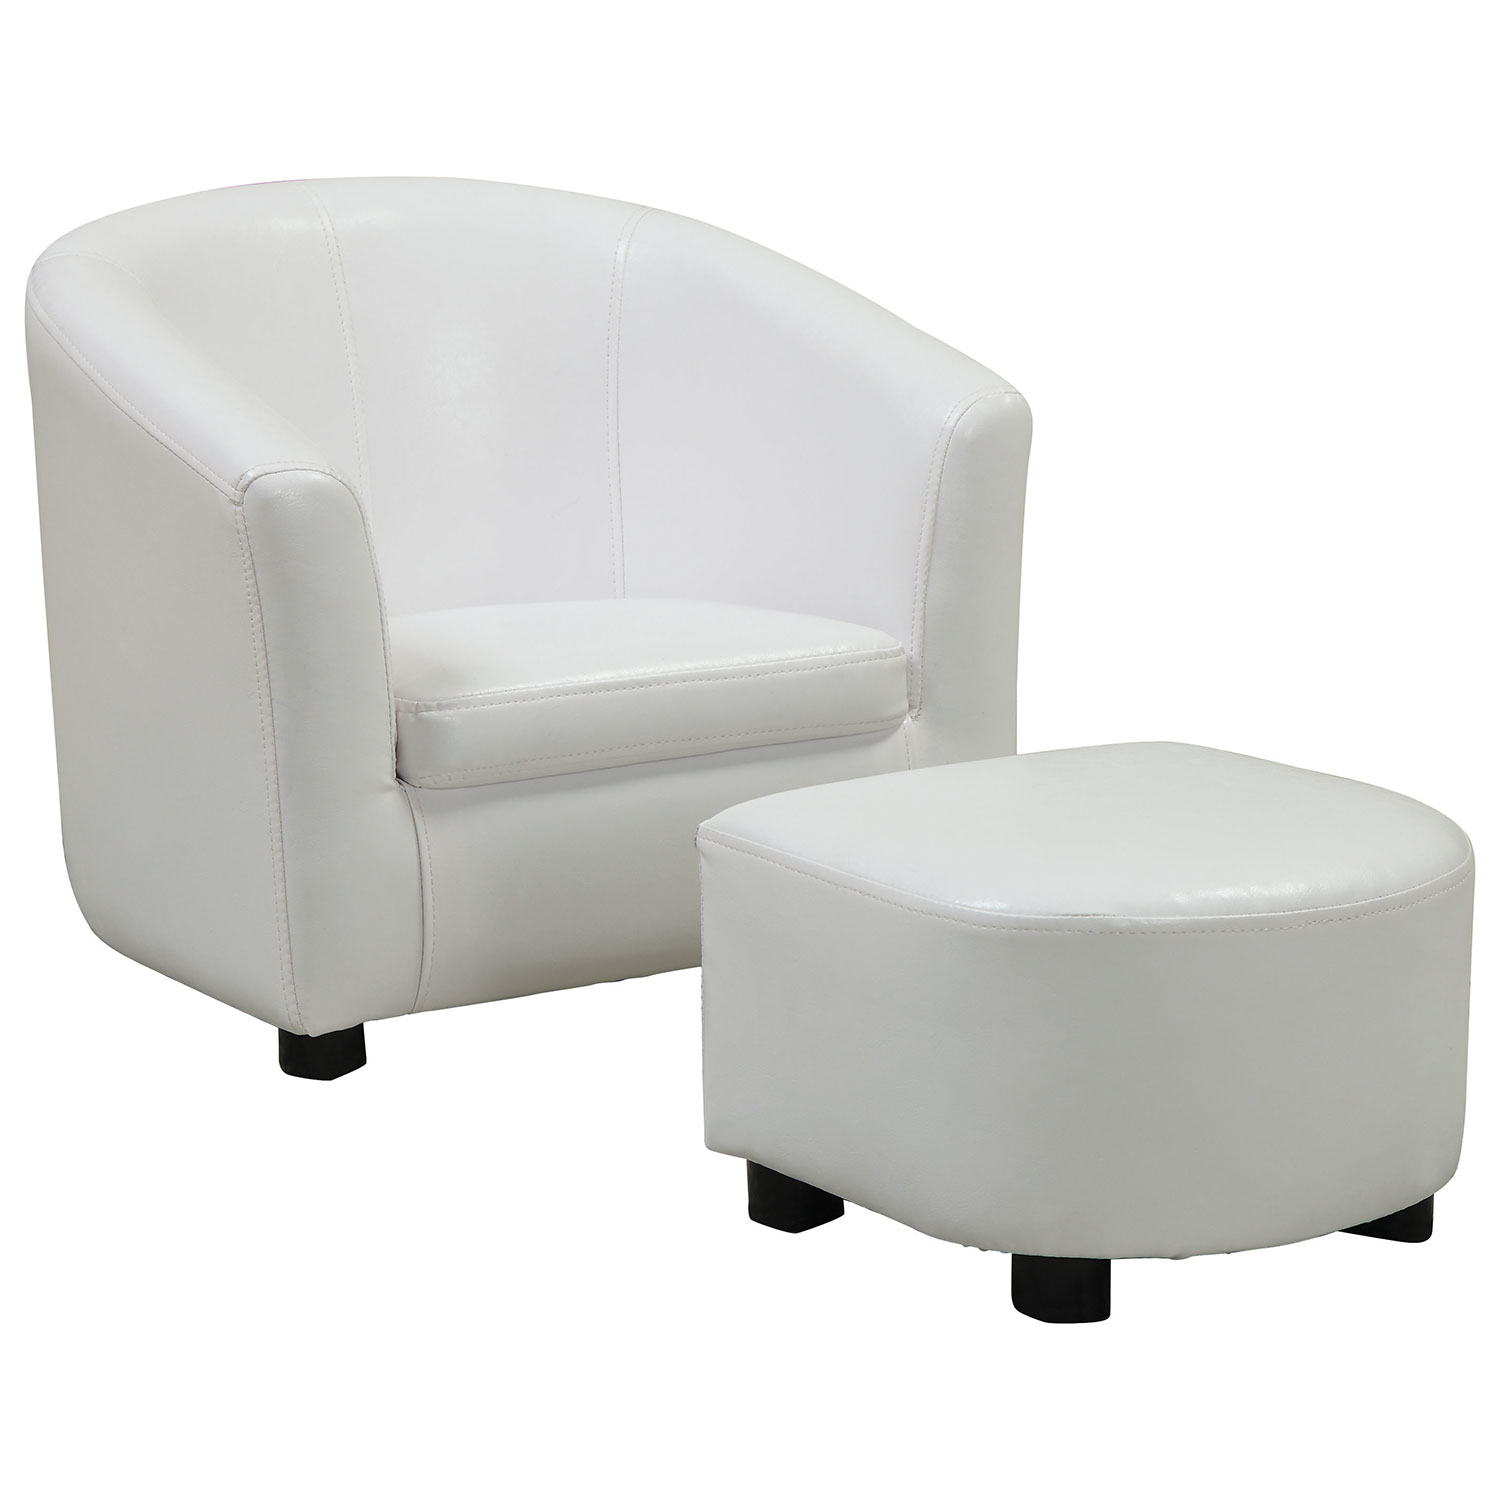 contemporary polyurethane kids chair and ottoman set  white  - contemporary polyurethane kids chair and ottoman set  white  accentchairs  best buy canada